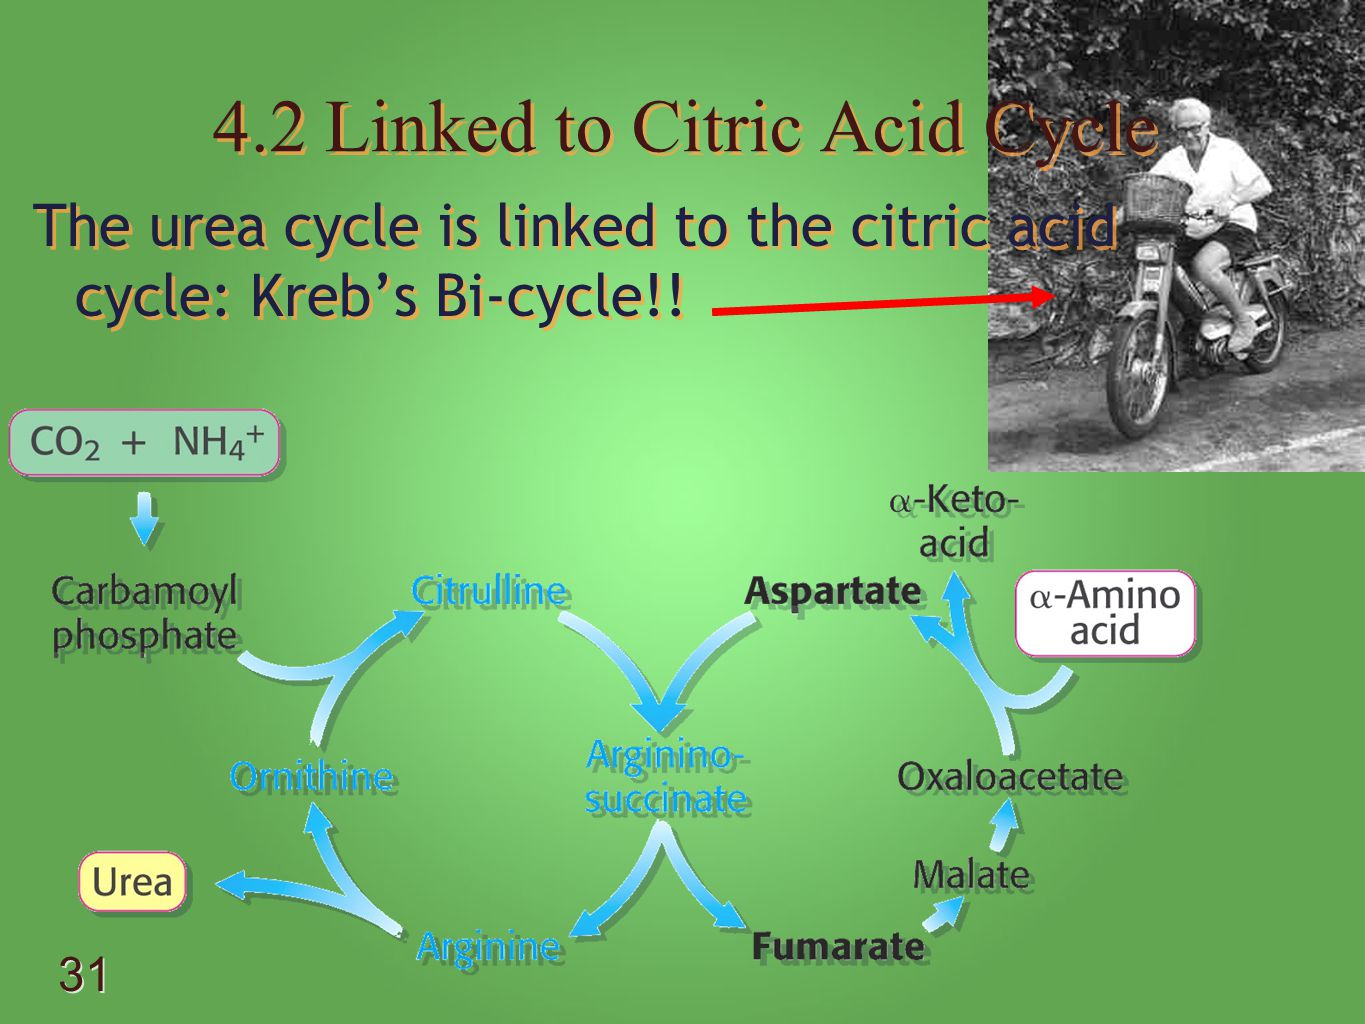 4.2 Linked to Citric Acid Cycle